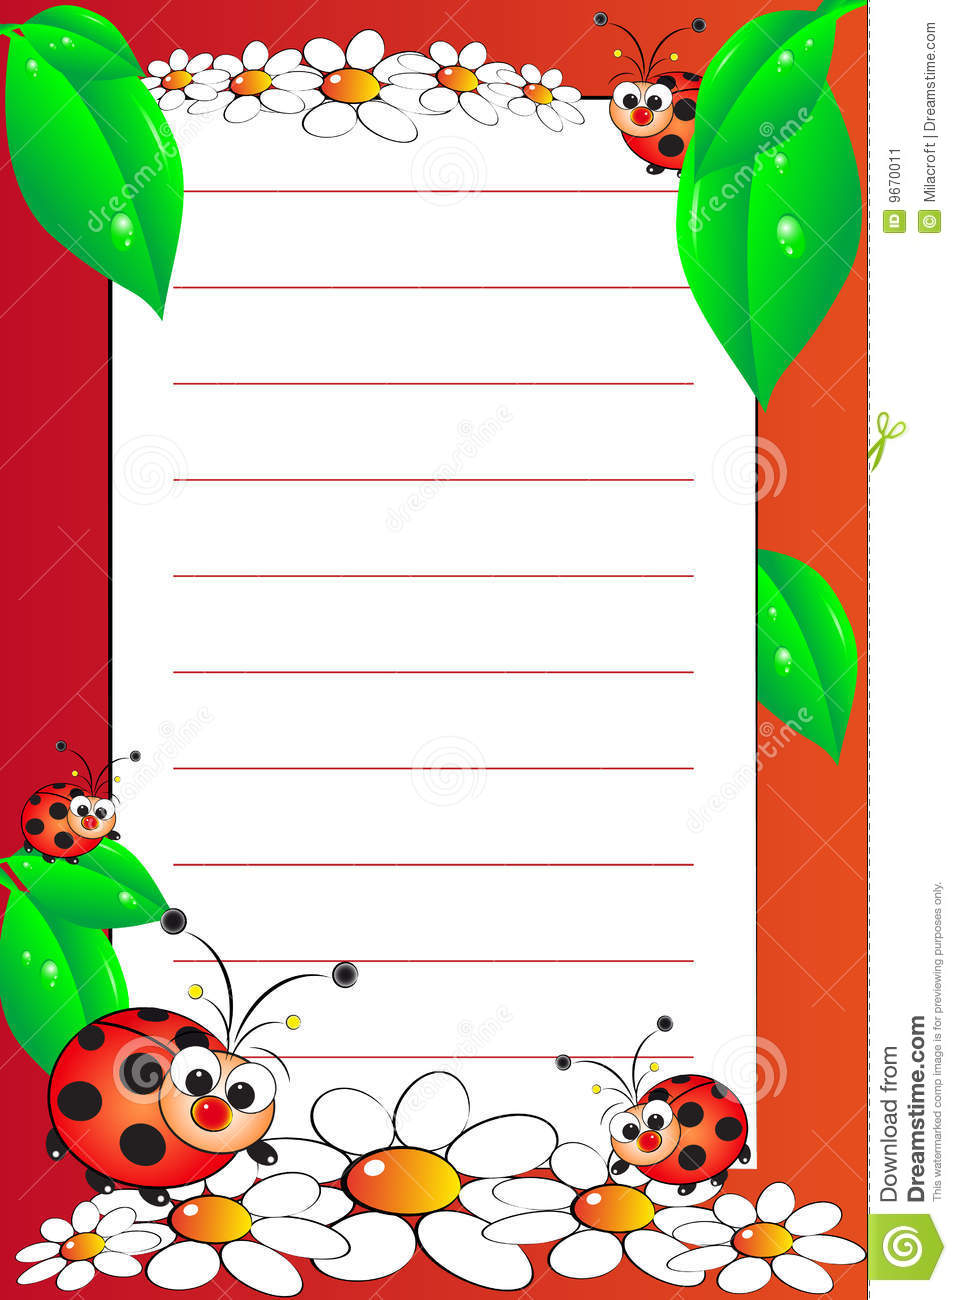 Kid Notebook With Blank Lined Page Image Image 9670011 – Blank Lined Page